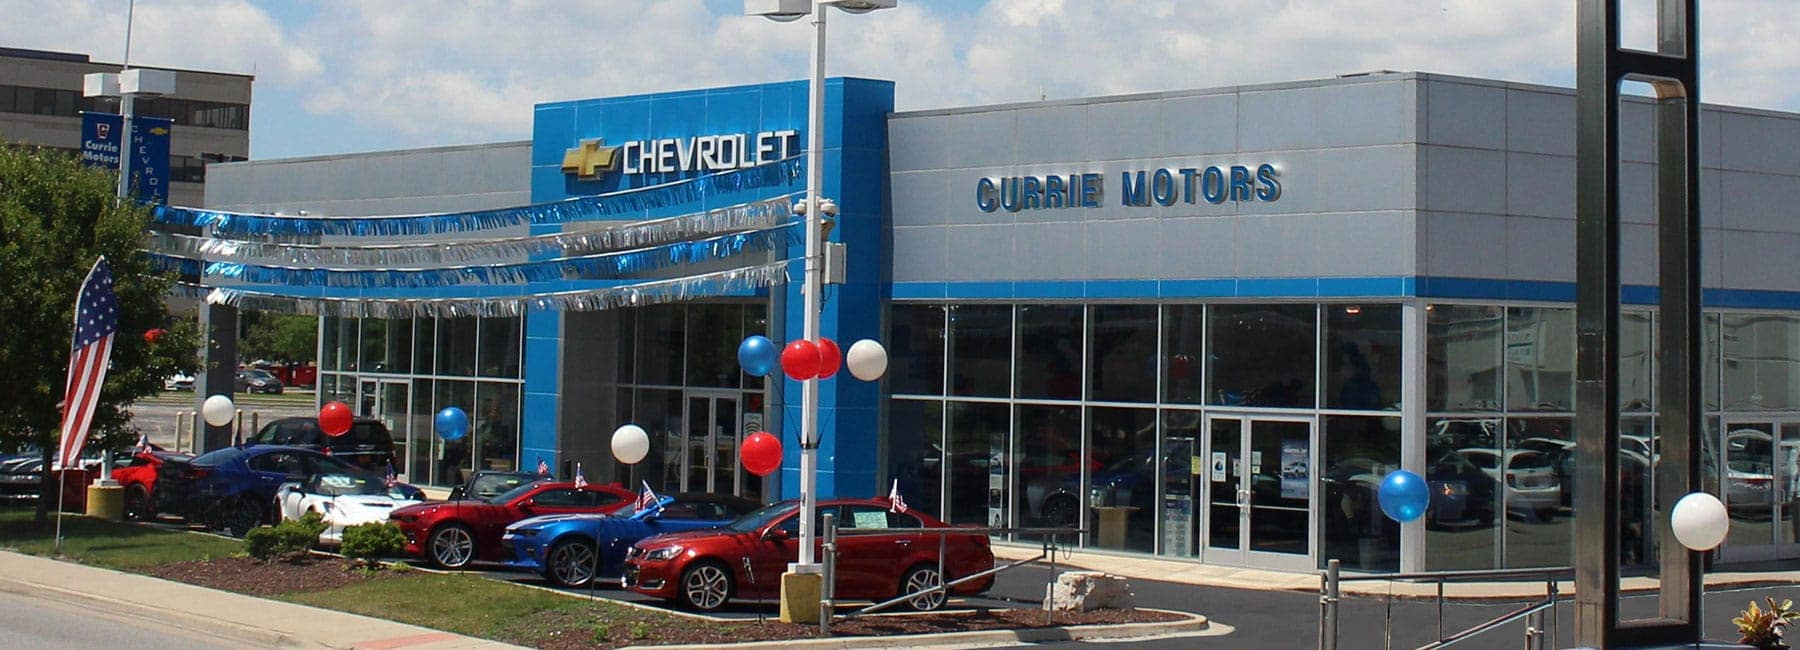 Outside view of the front of the dealership